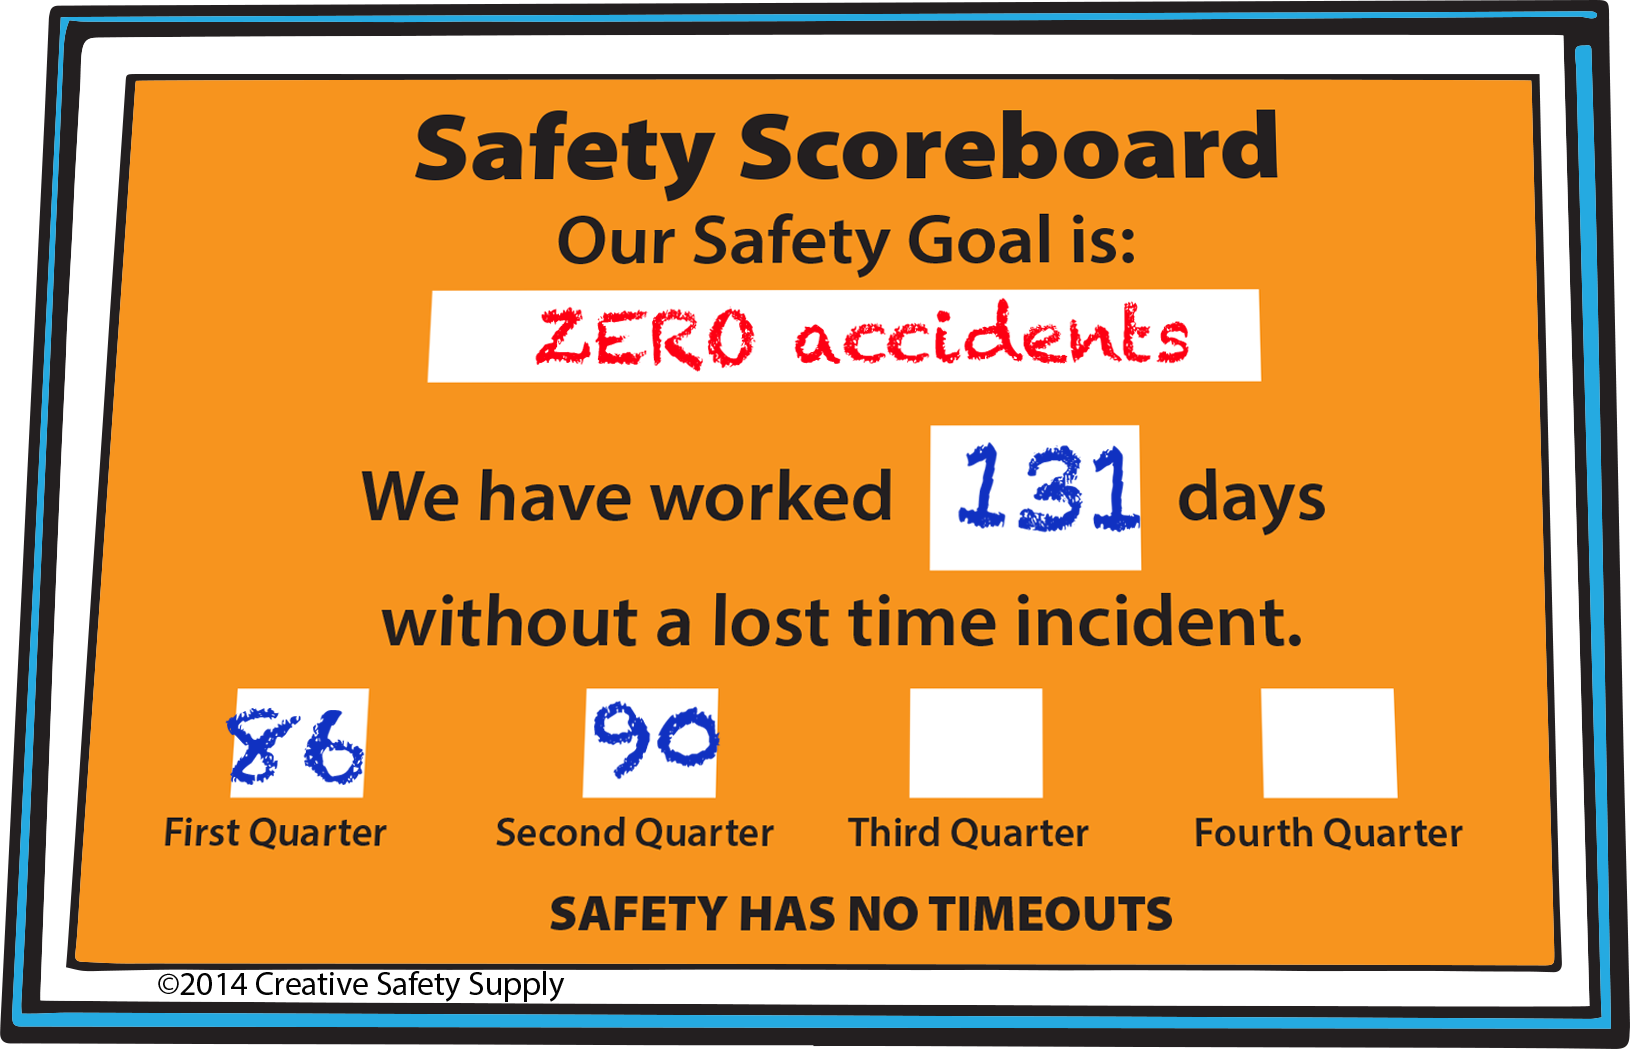 Near Misses Safety Scoreboard